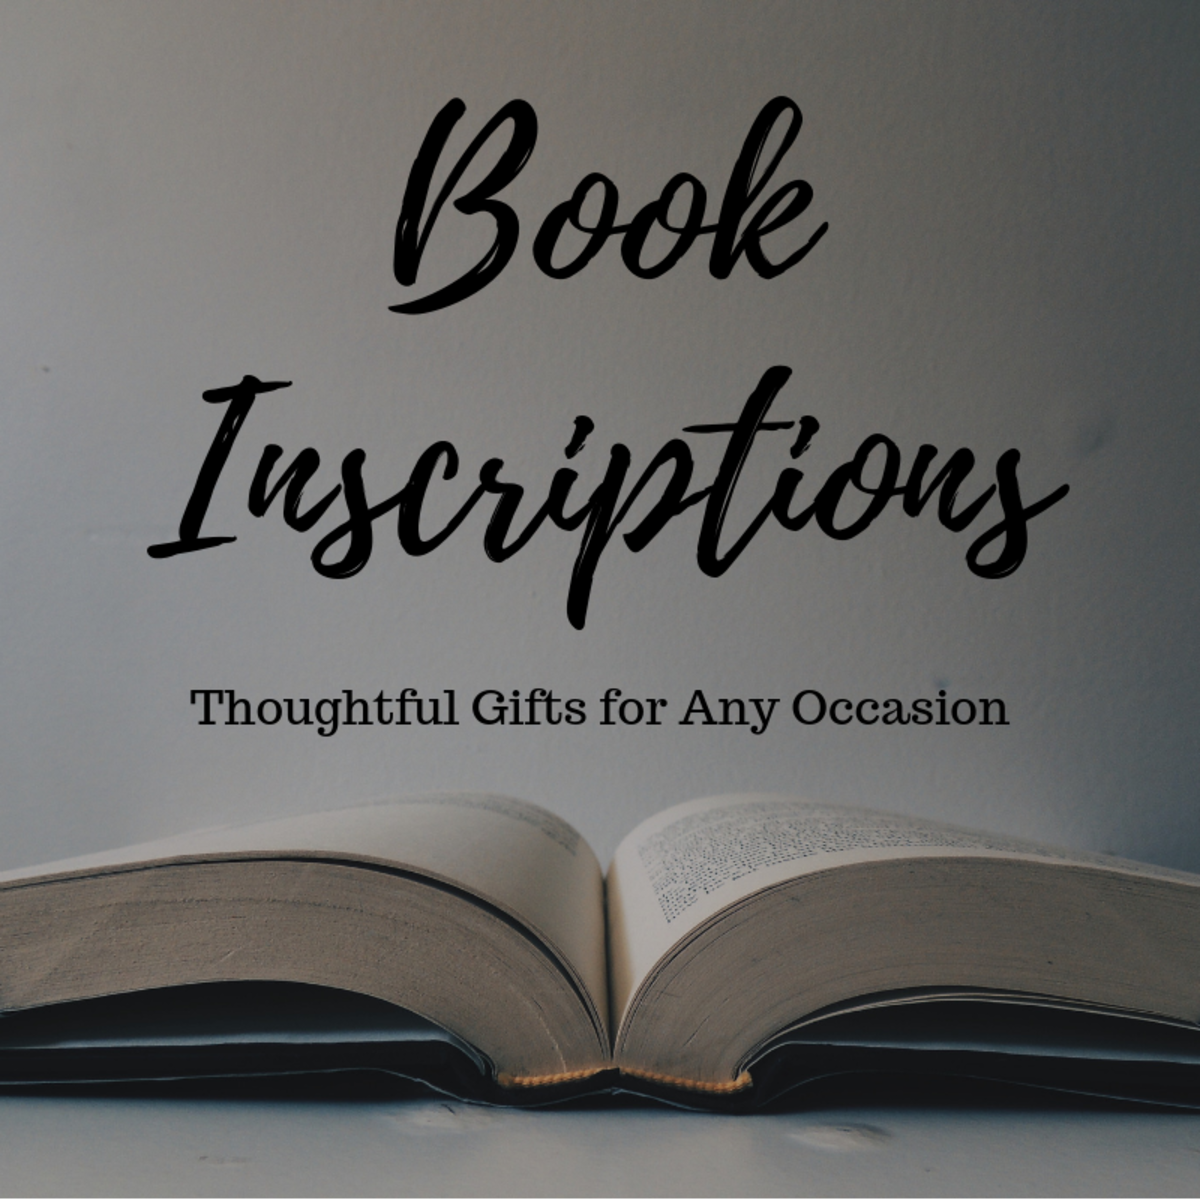 Book inscriptions are a great way to add a personal message to a useful gift.